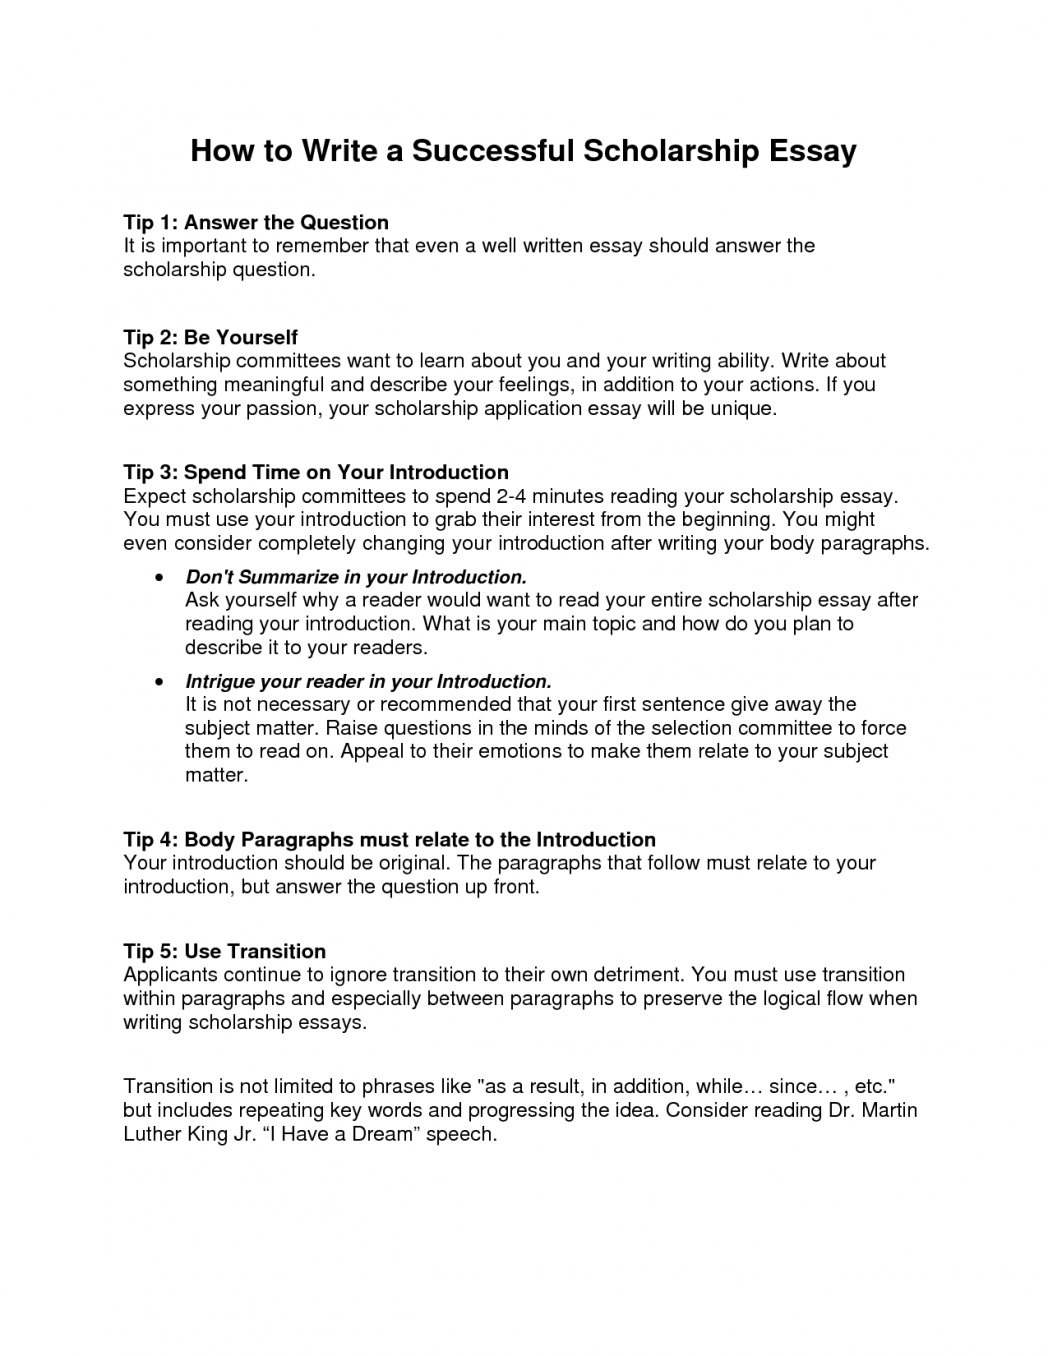 010 How To Write Perfect Essay Example Essays Writing About